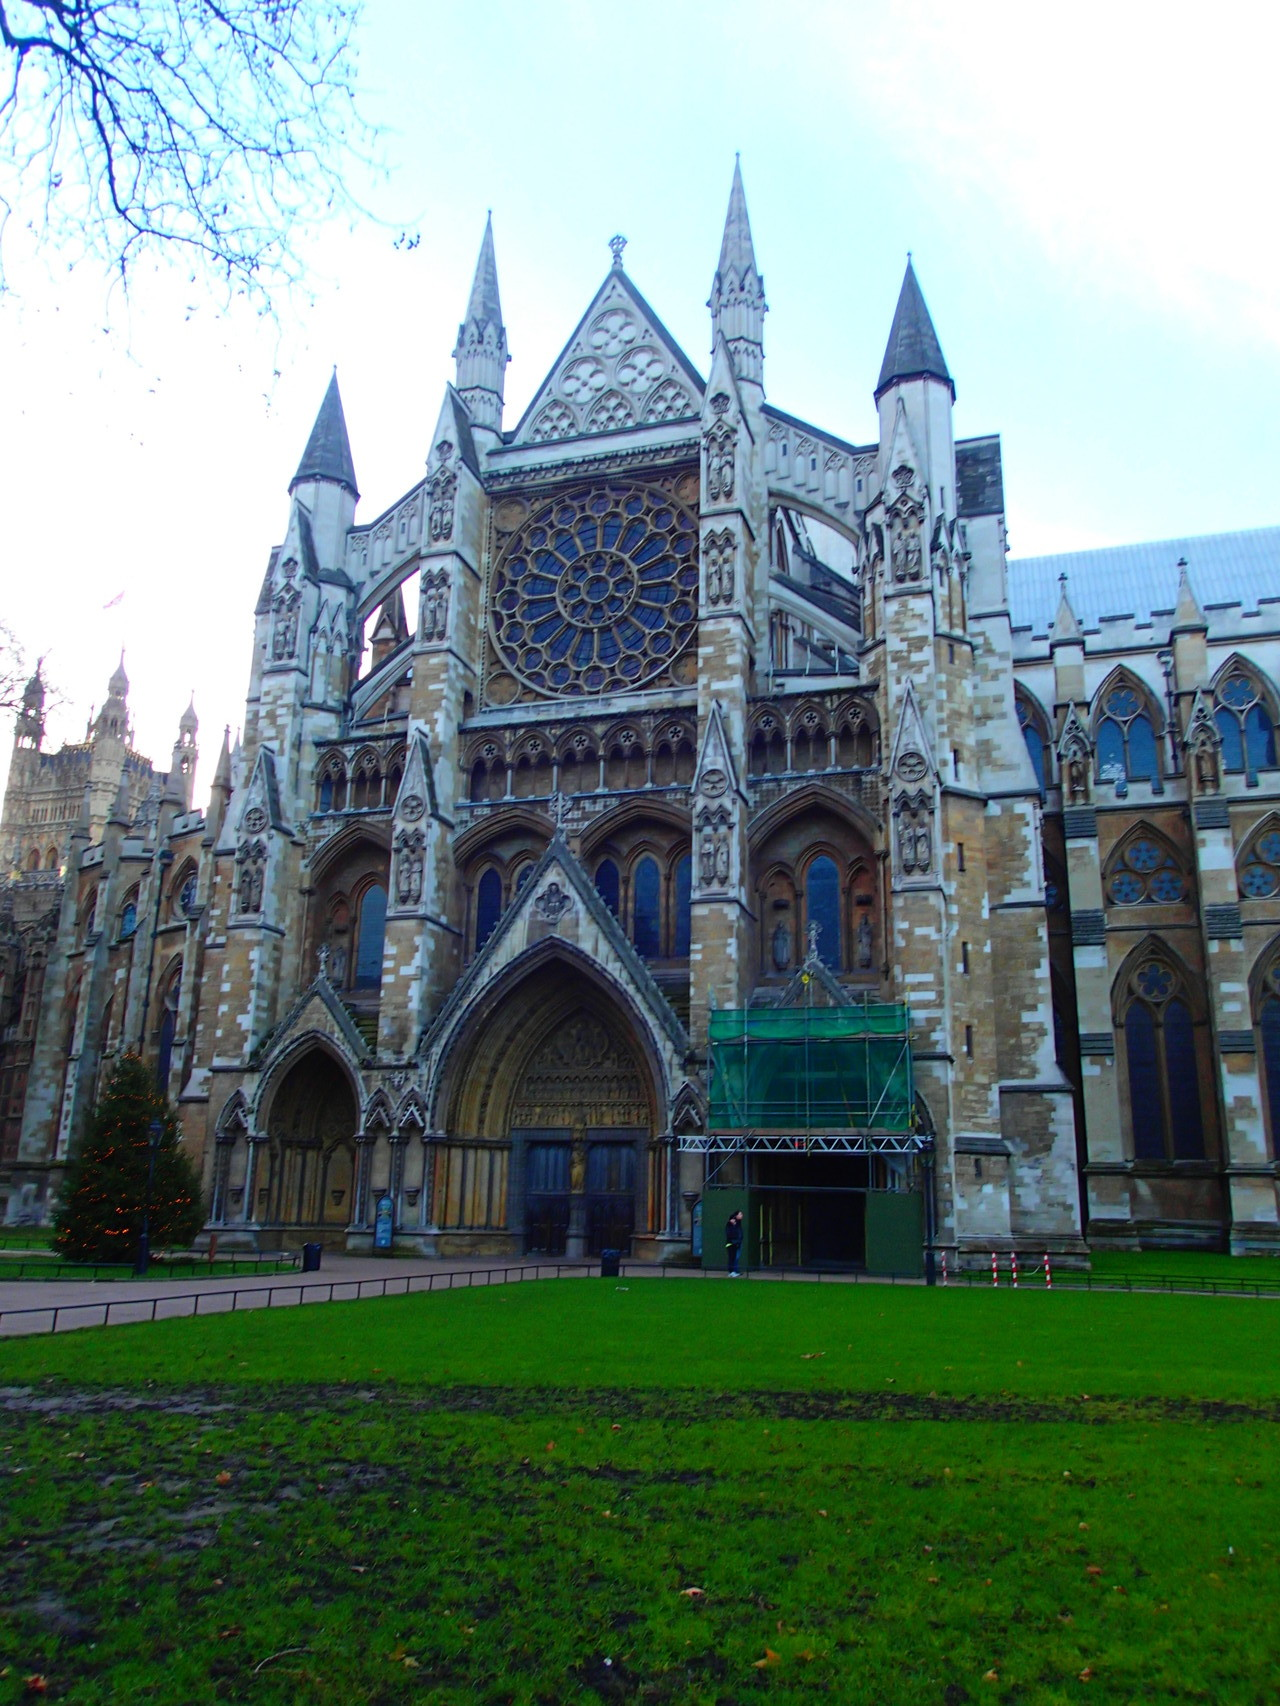 Die Kapelle der Westminster Abbey